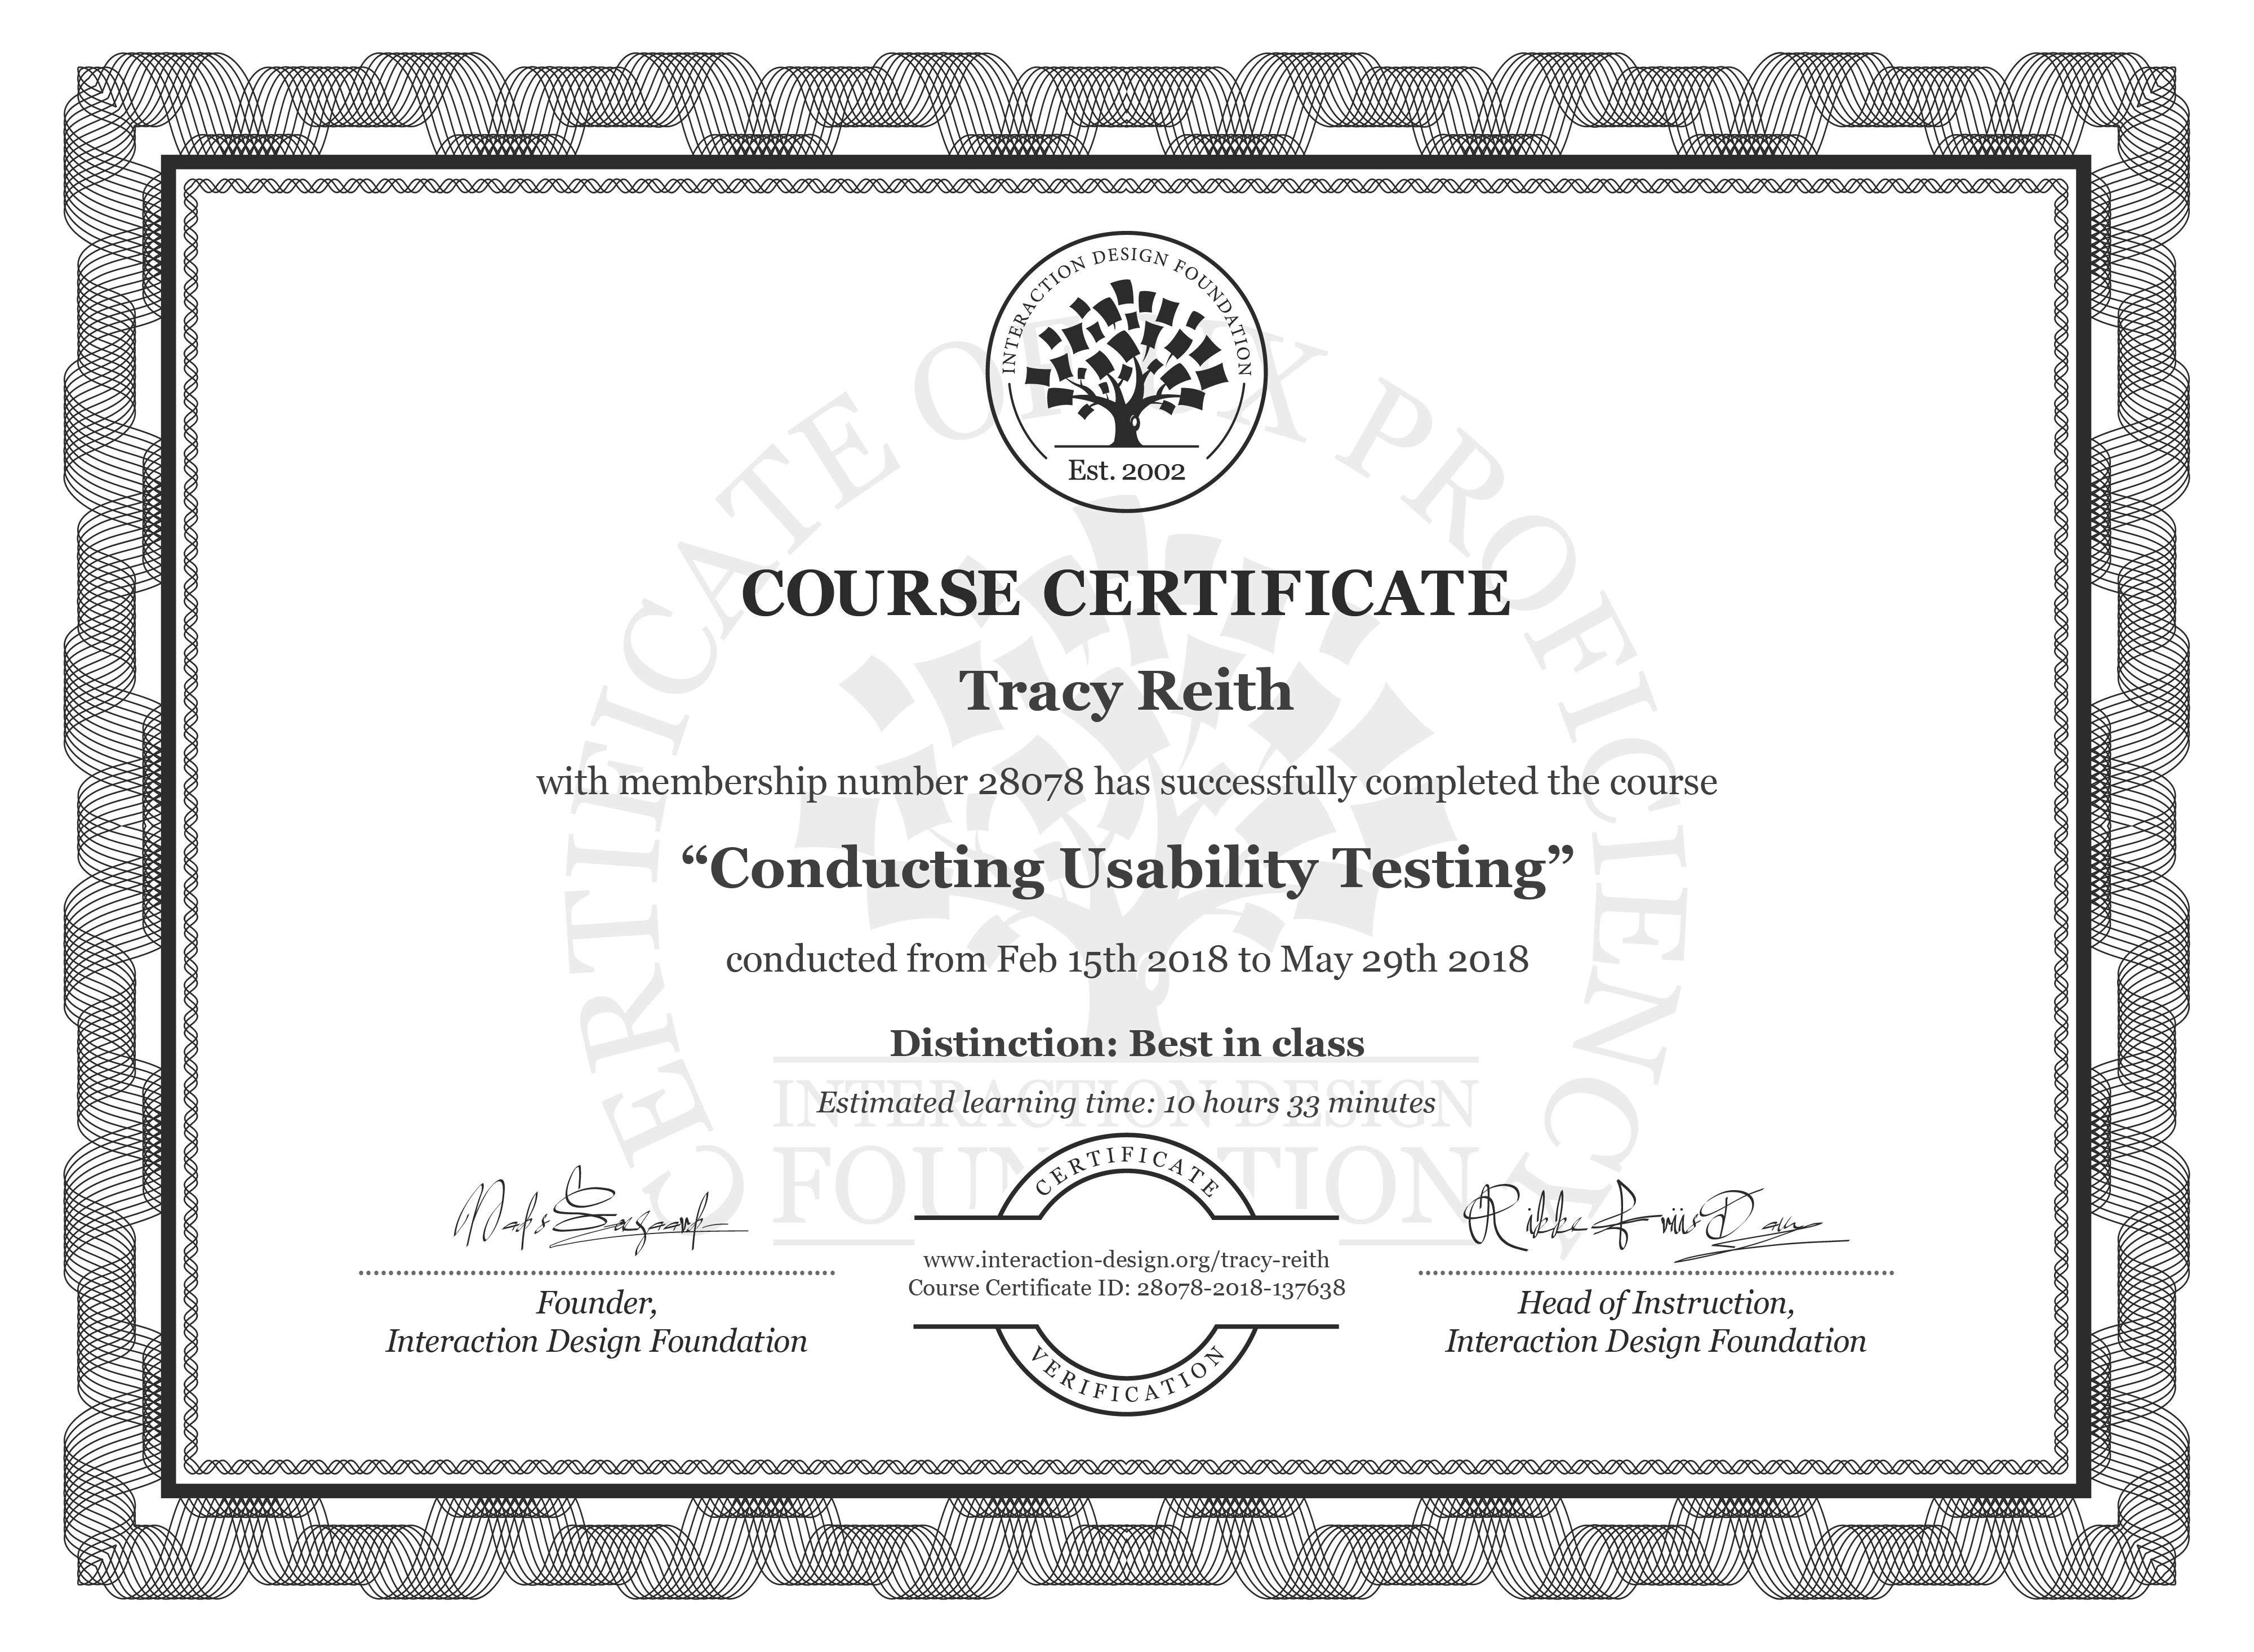 Tracy Reith's Course Certificate: Conducting Usability Testing